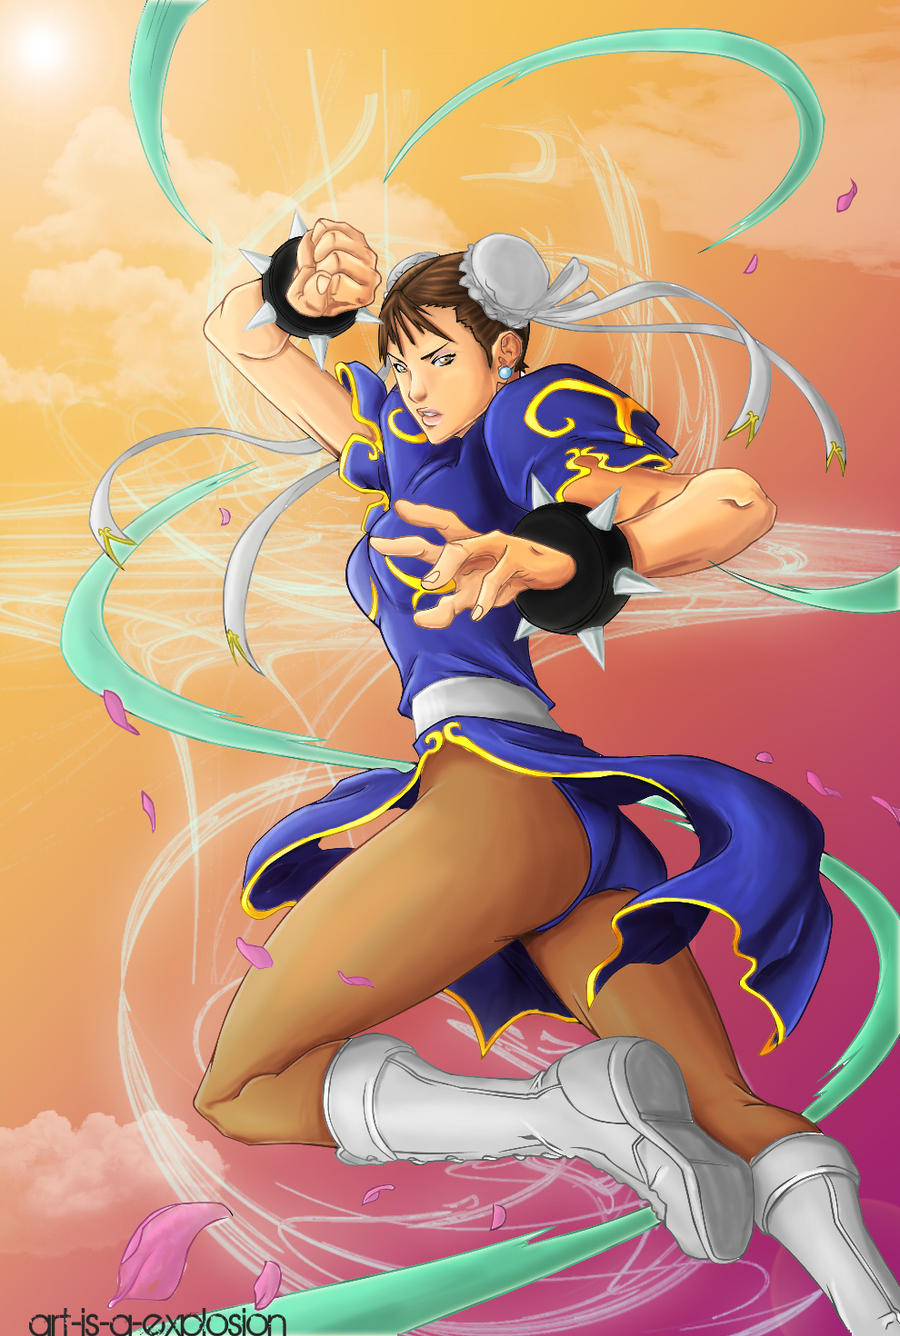 Chun Li in the air by Art-is-a-Explosion